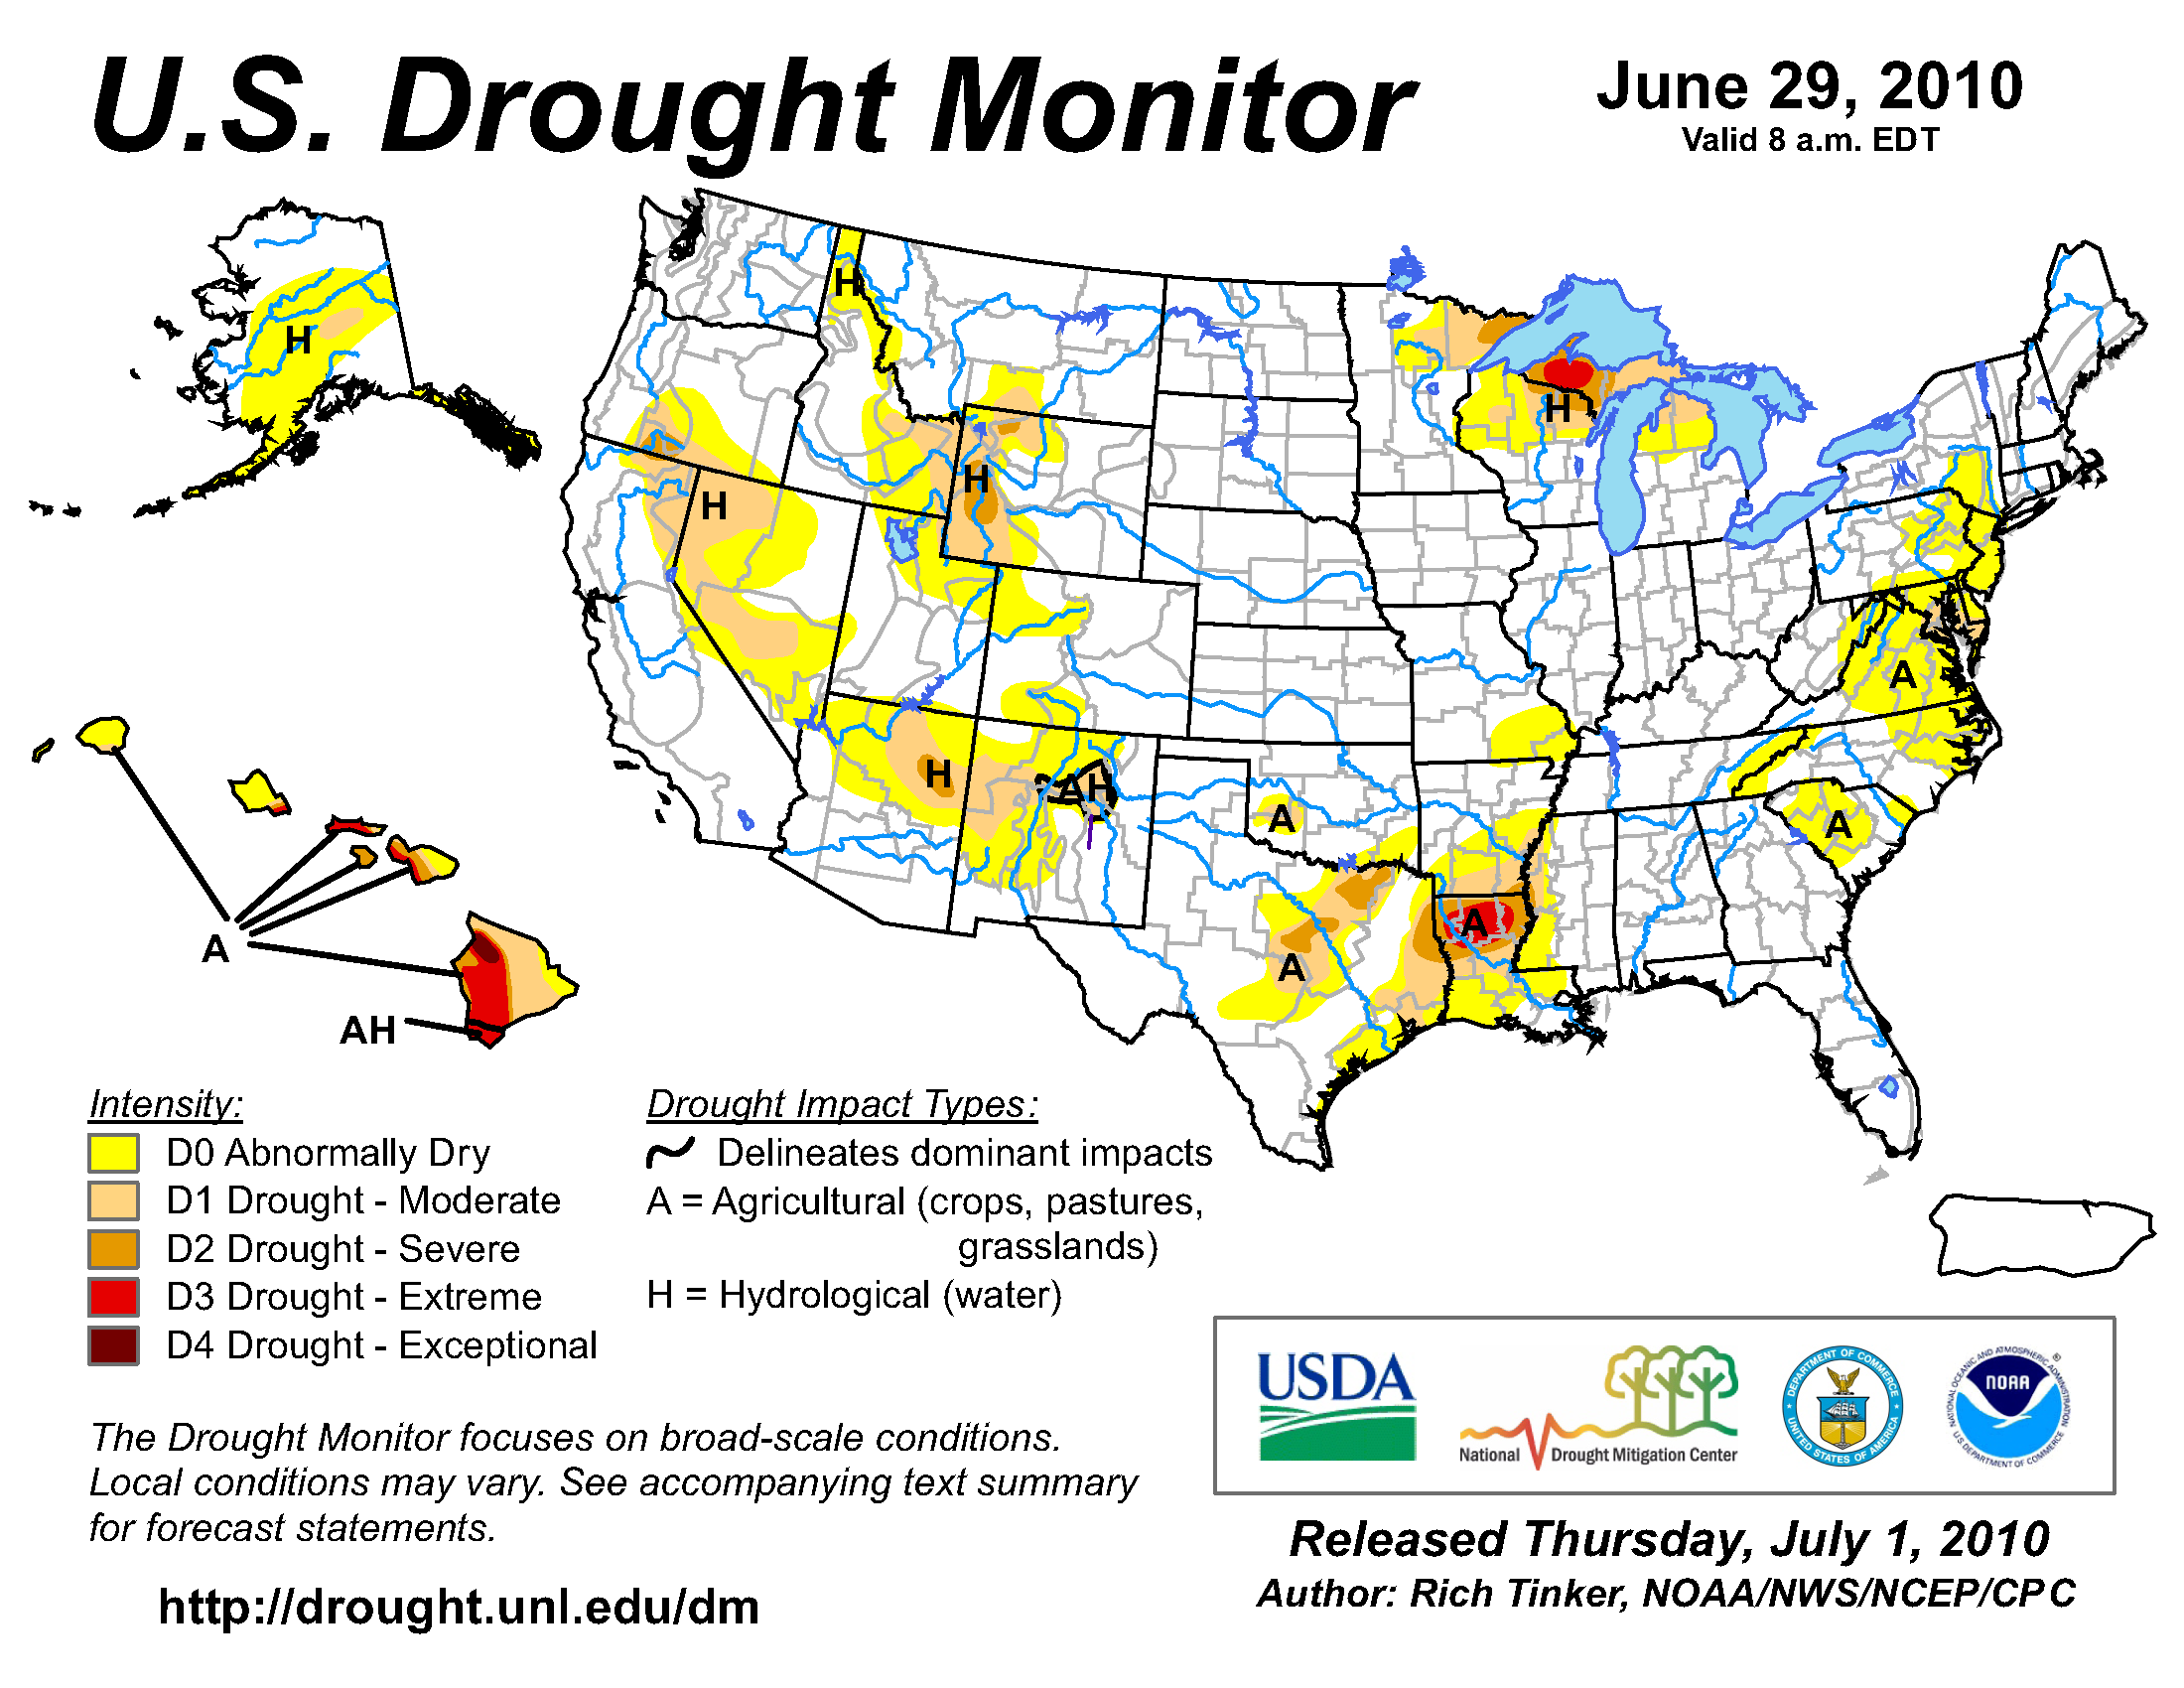 U.S. Drought Monitor map from 29 June 2010